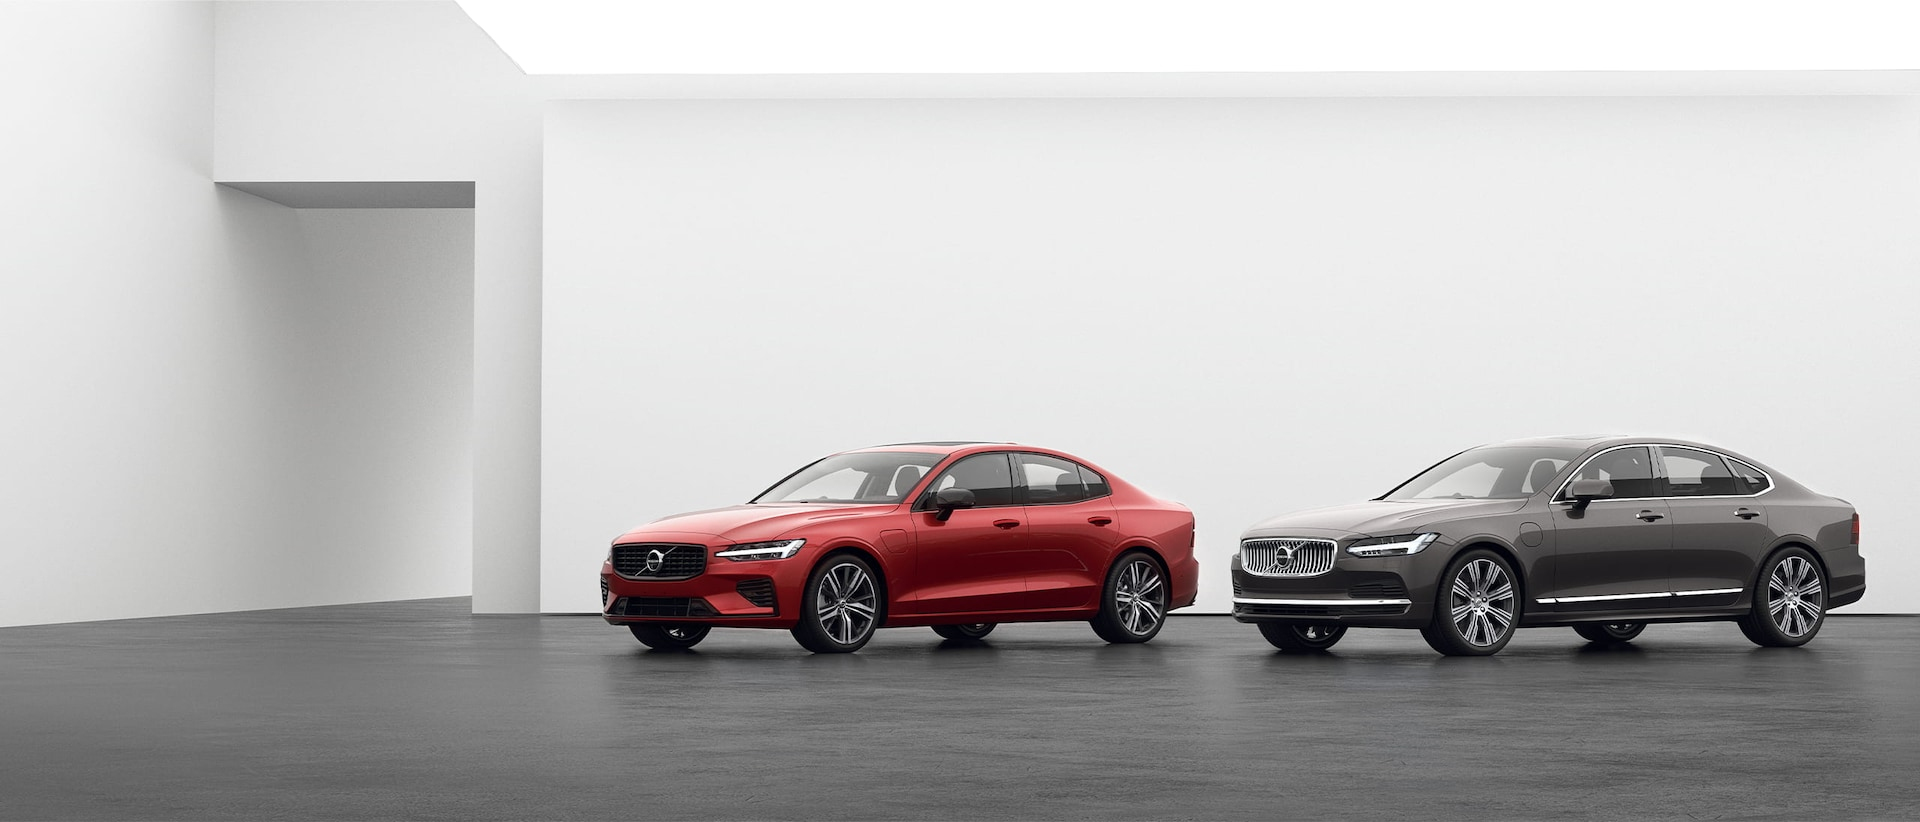 A Volvo S90 and a Volvo S60 Recharge plugin hybrid parked on grey floor